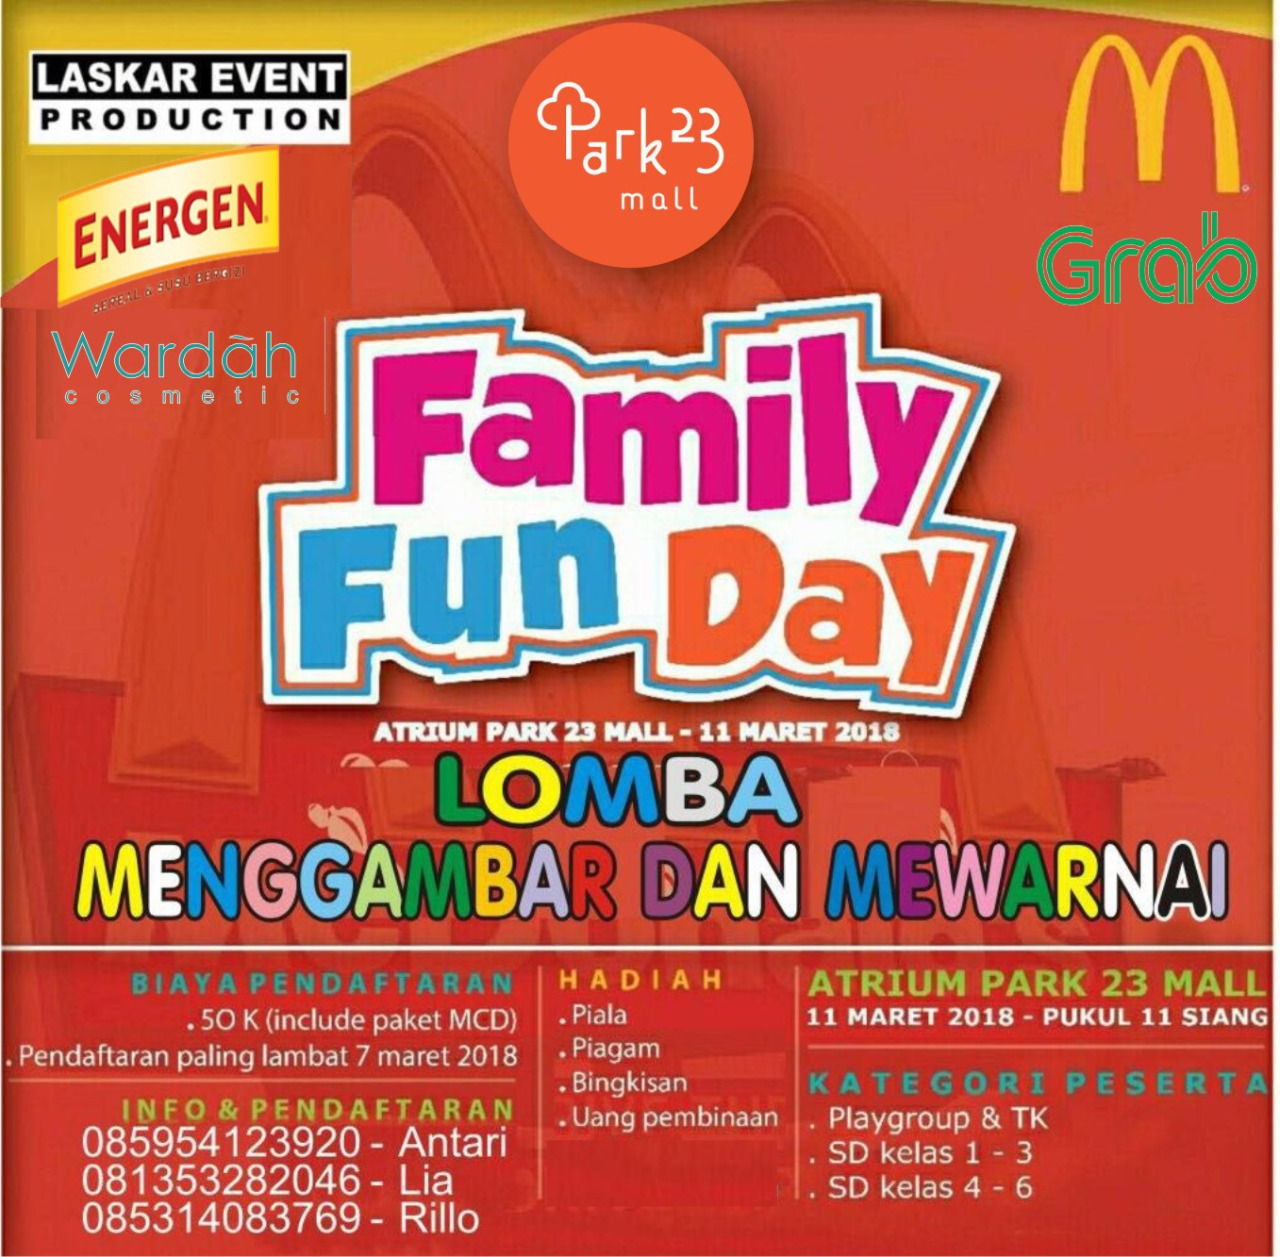 Grab Bali – Family Fun Day